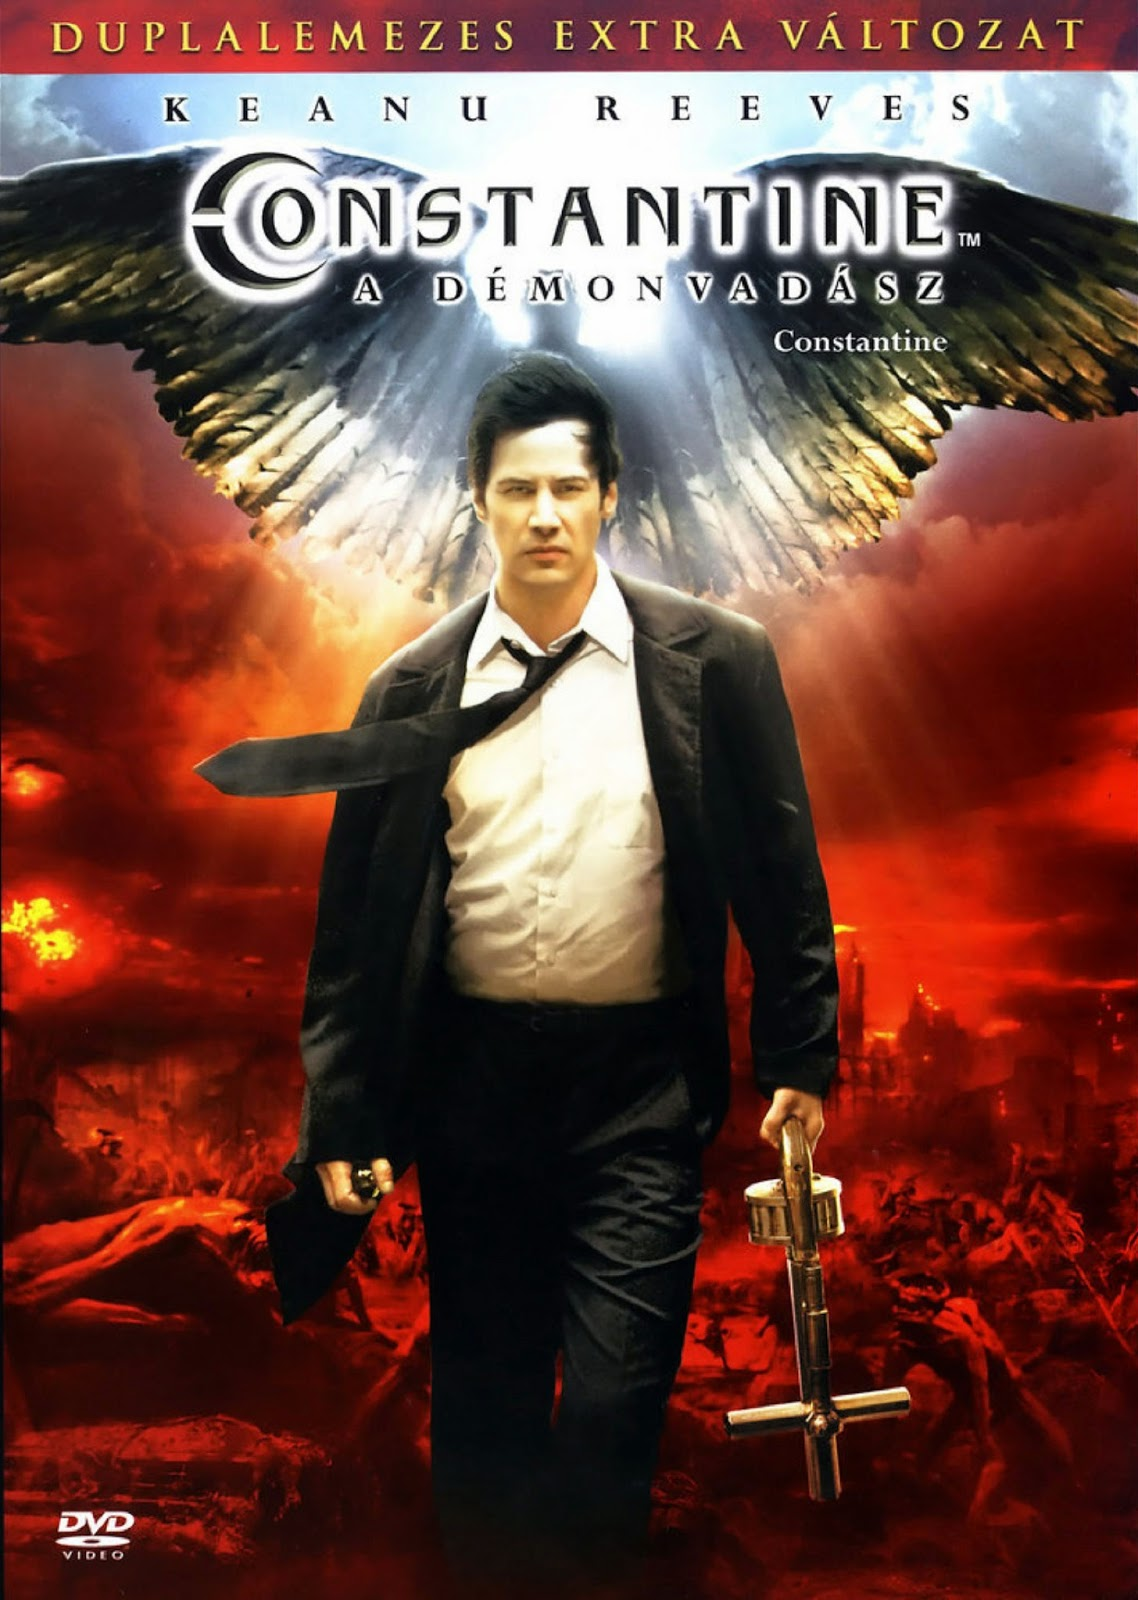 constantine full movie in hindi download 480p